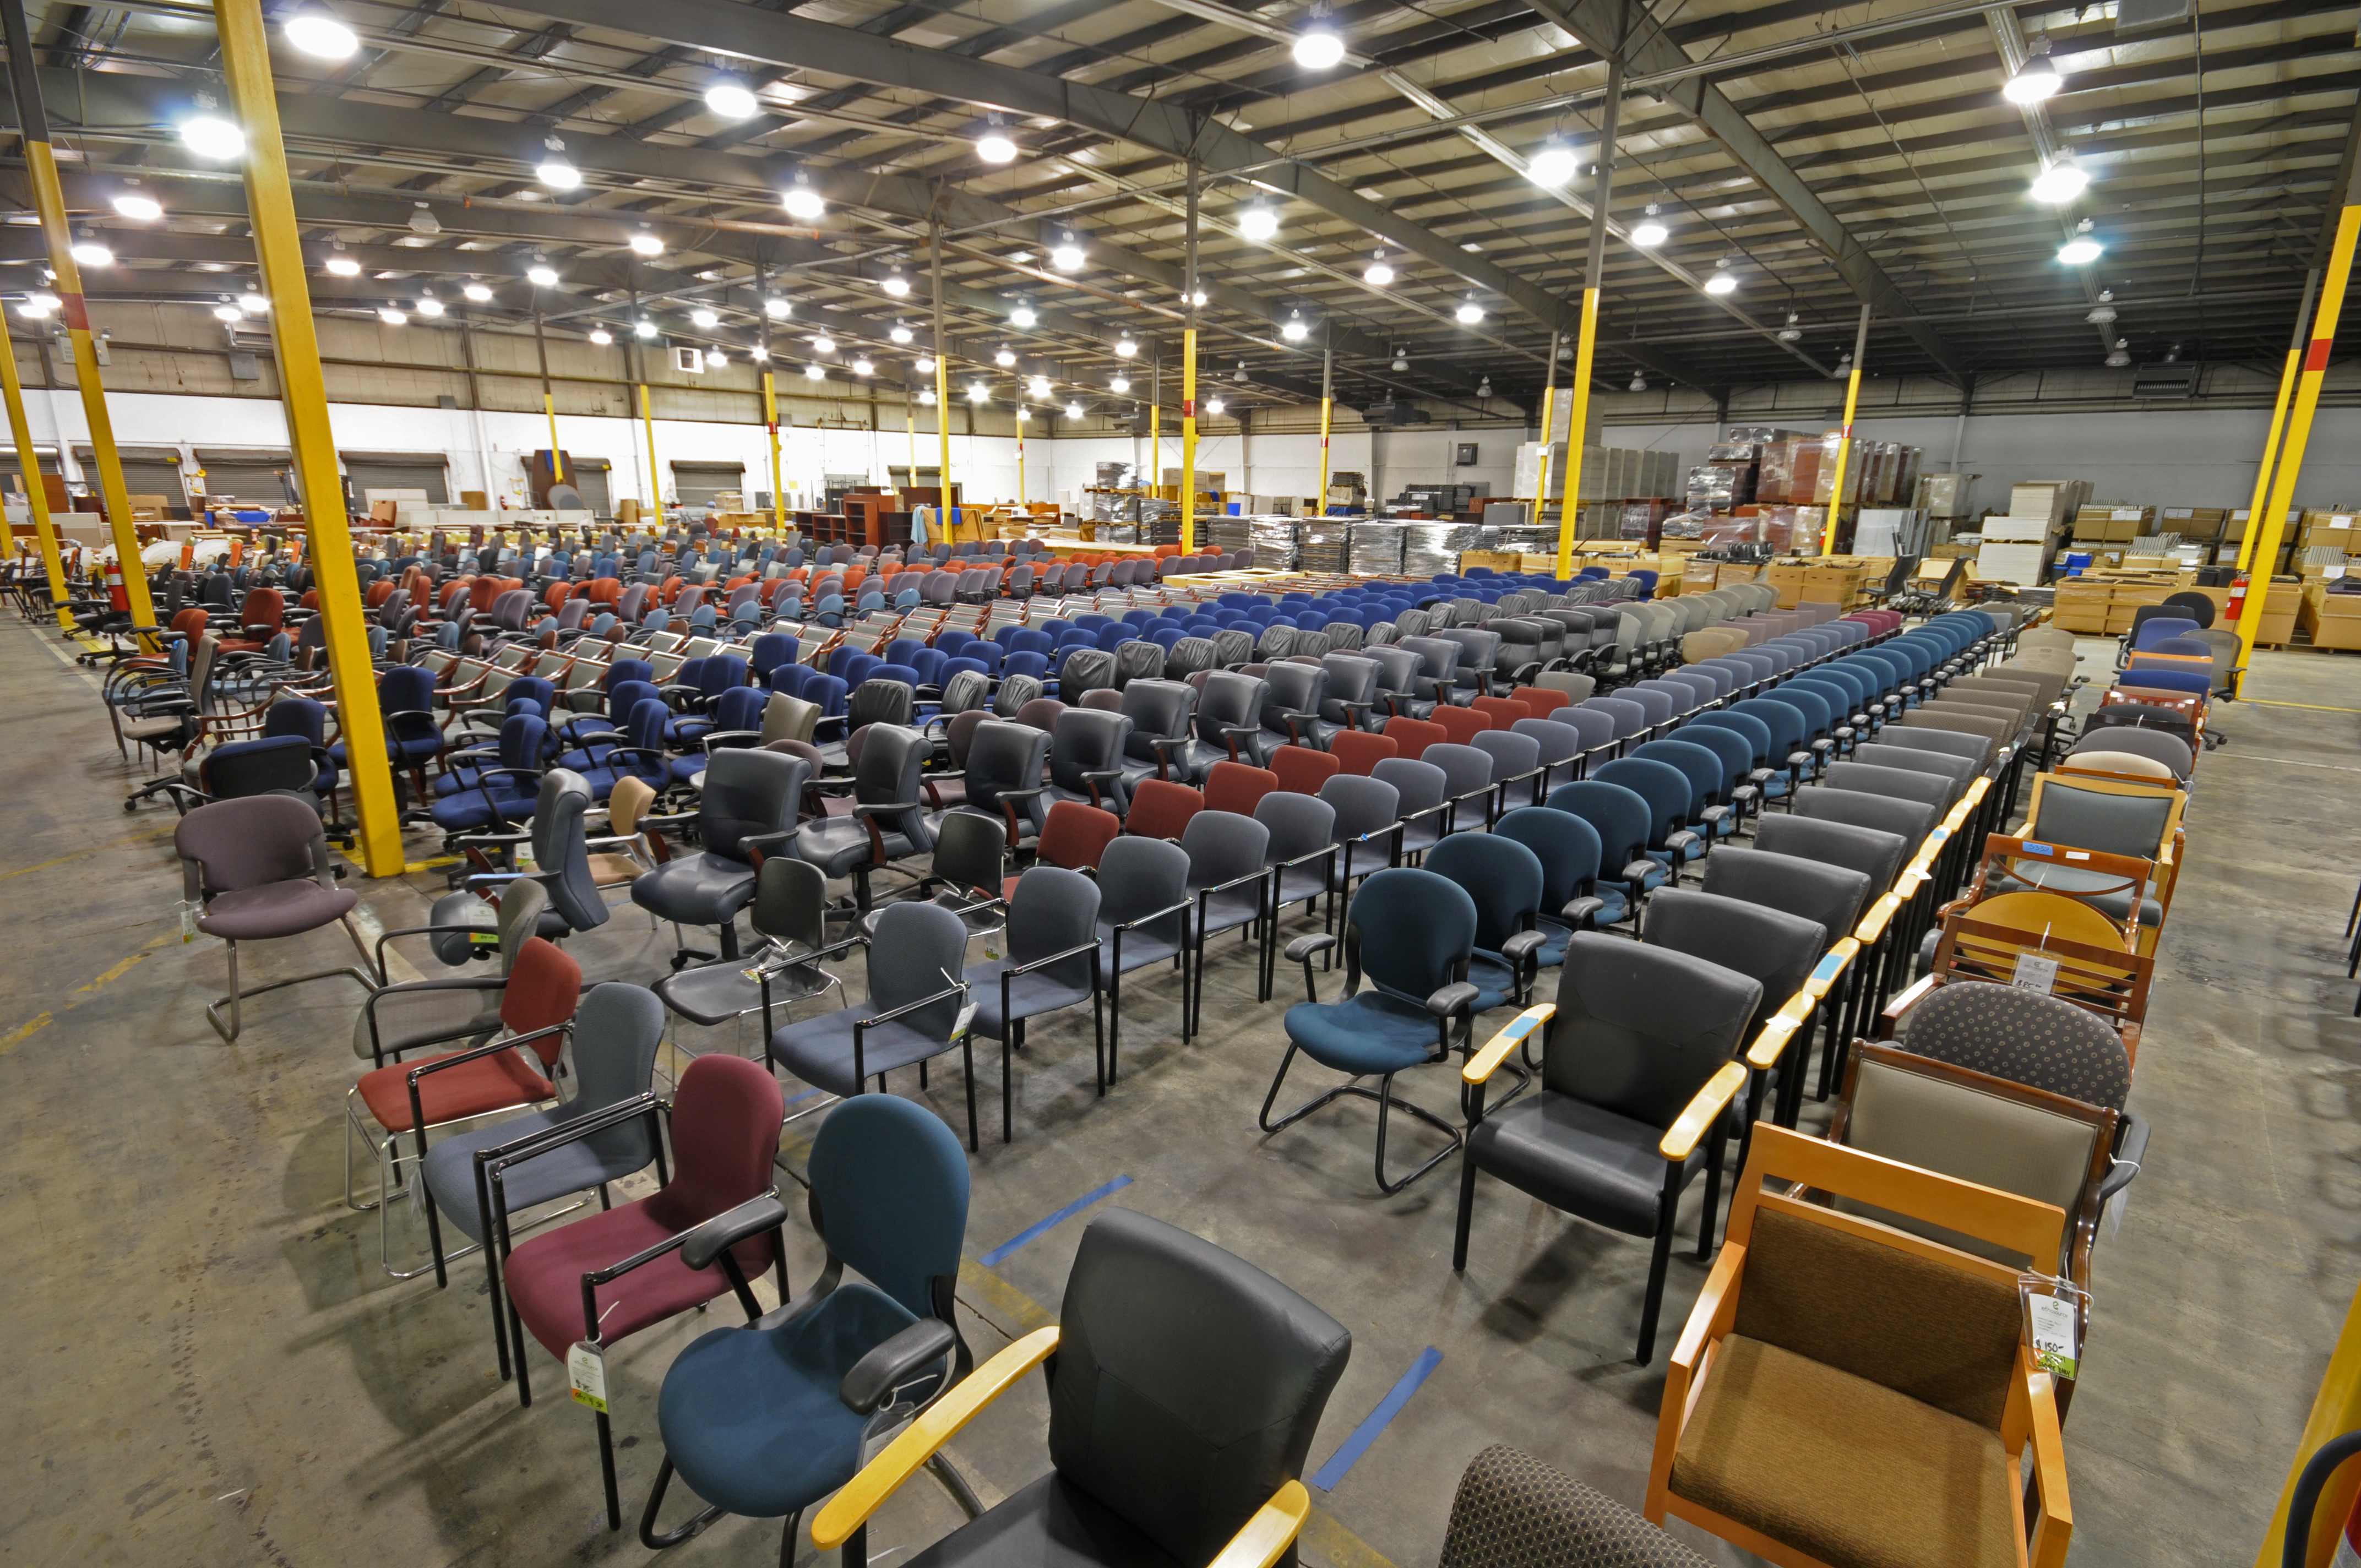 Office Furniture Stores in King of Prussia  New, Used, and